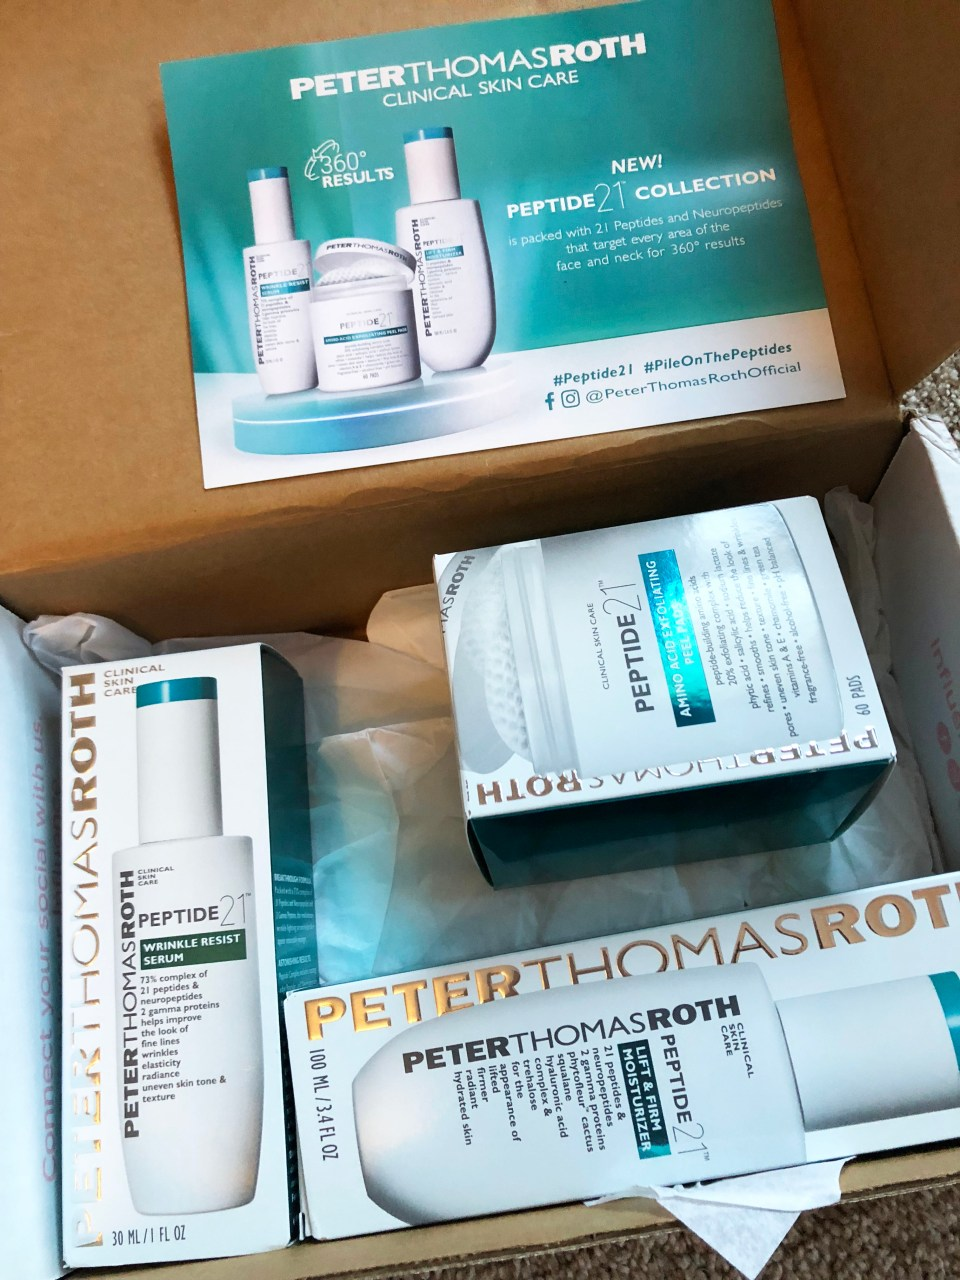 Peter Thomas Roth Peptide 21 Collection